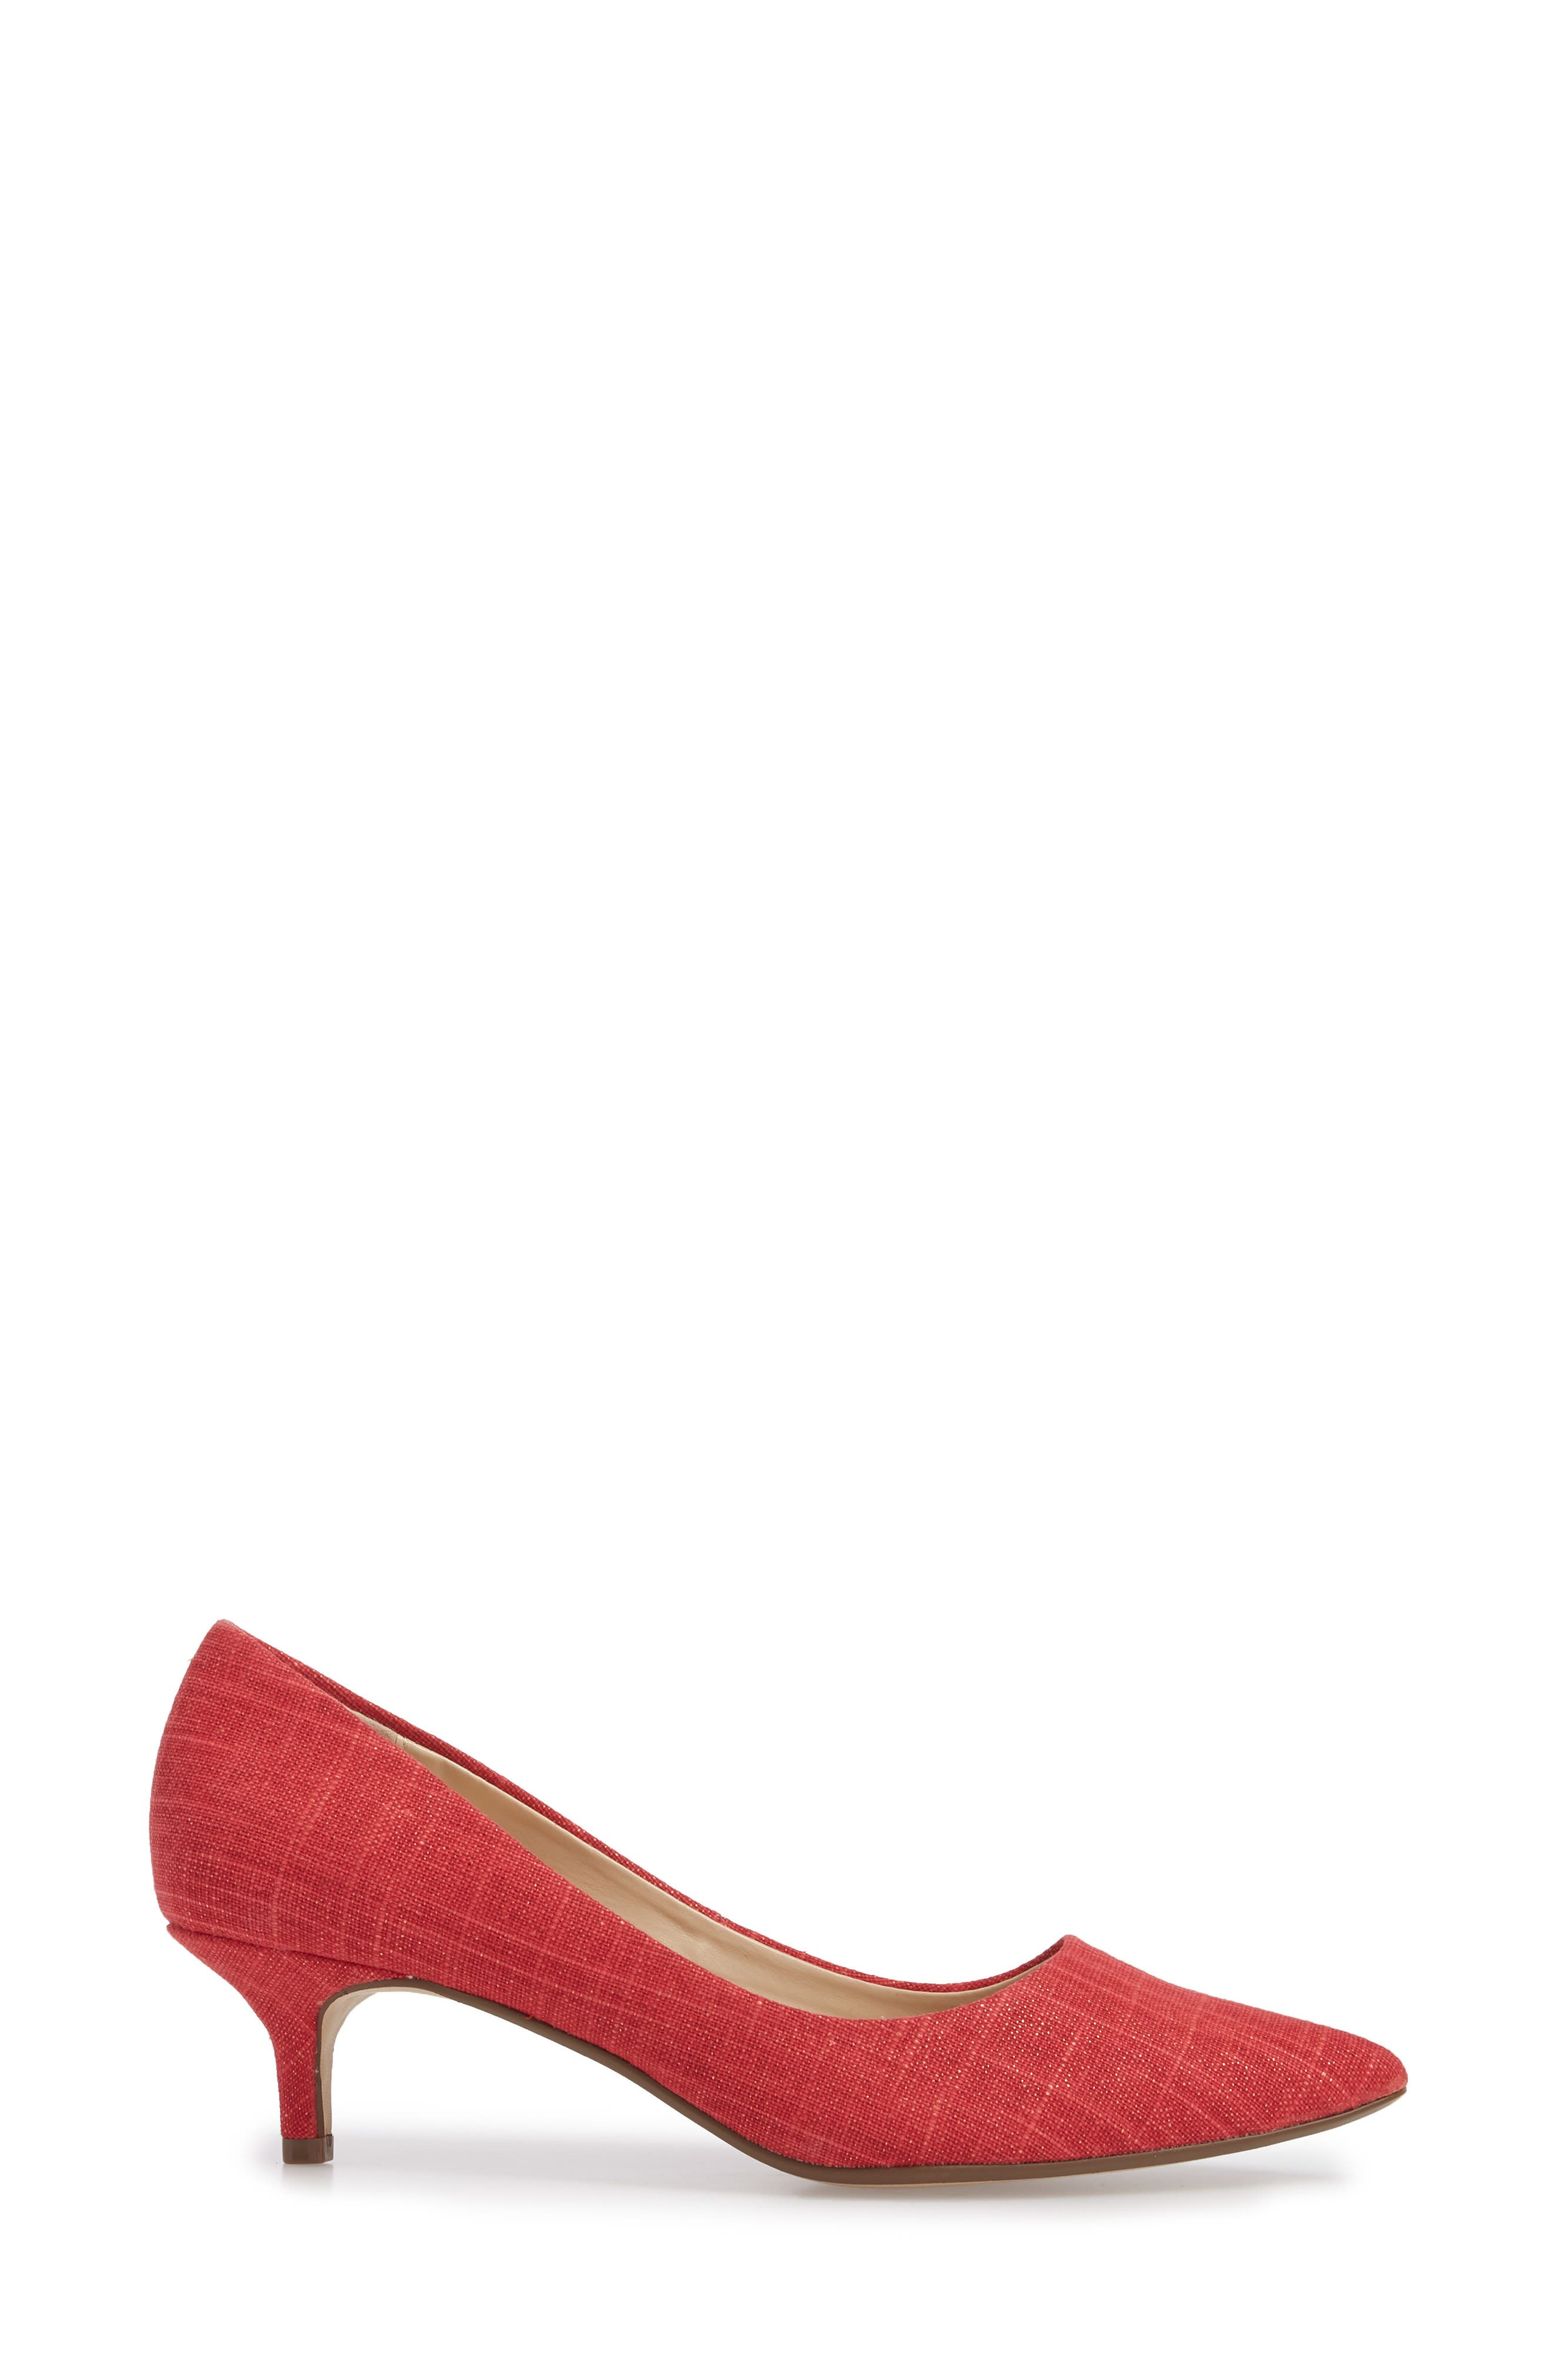 Target Kitten Heel Pump,                             Alternate thumbnail 3, color,                             Red Fabric